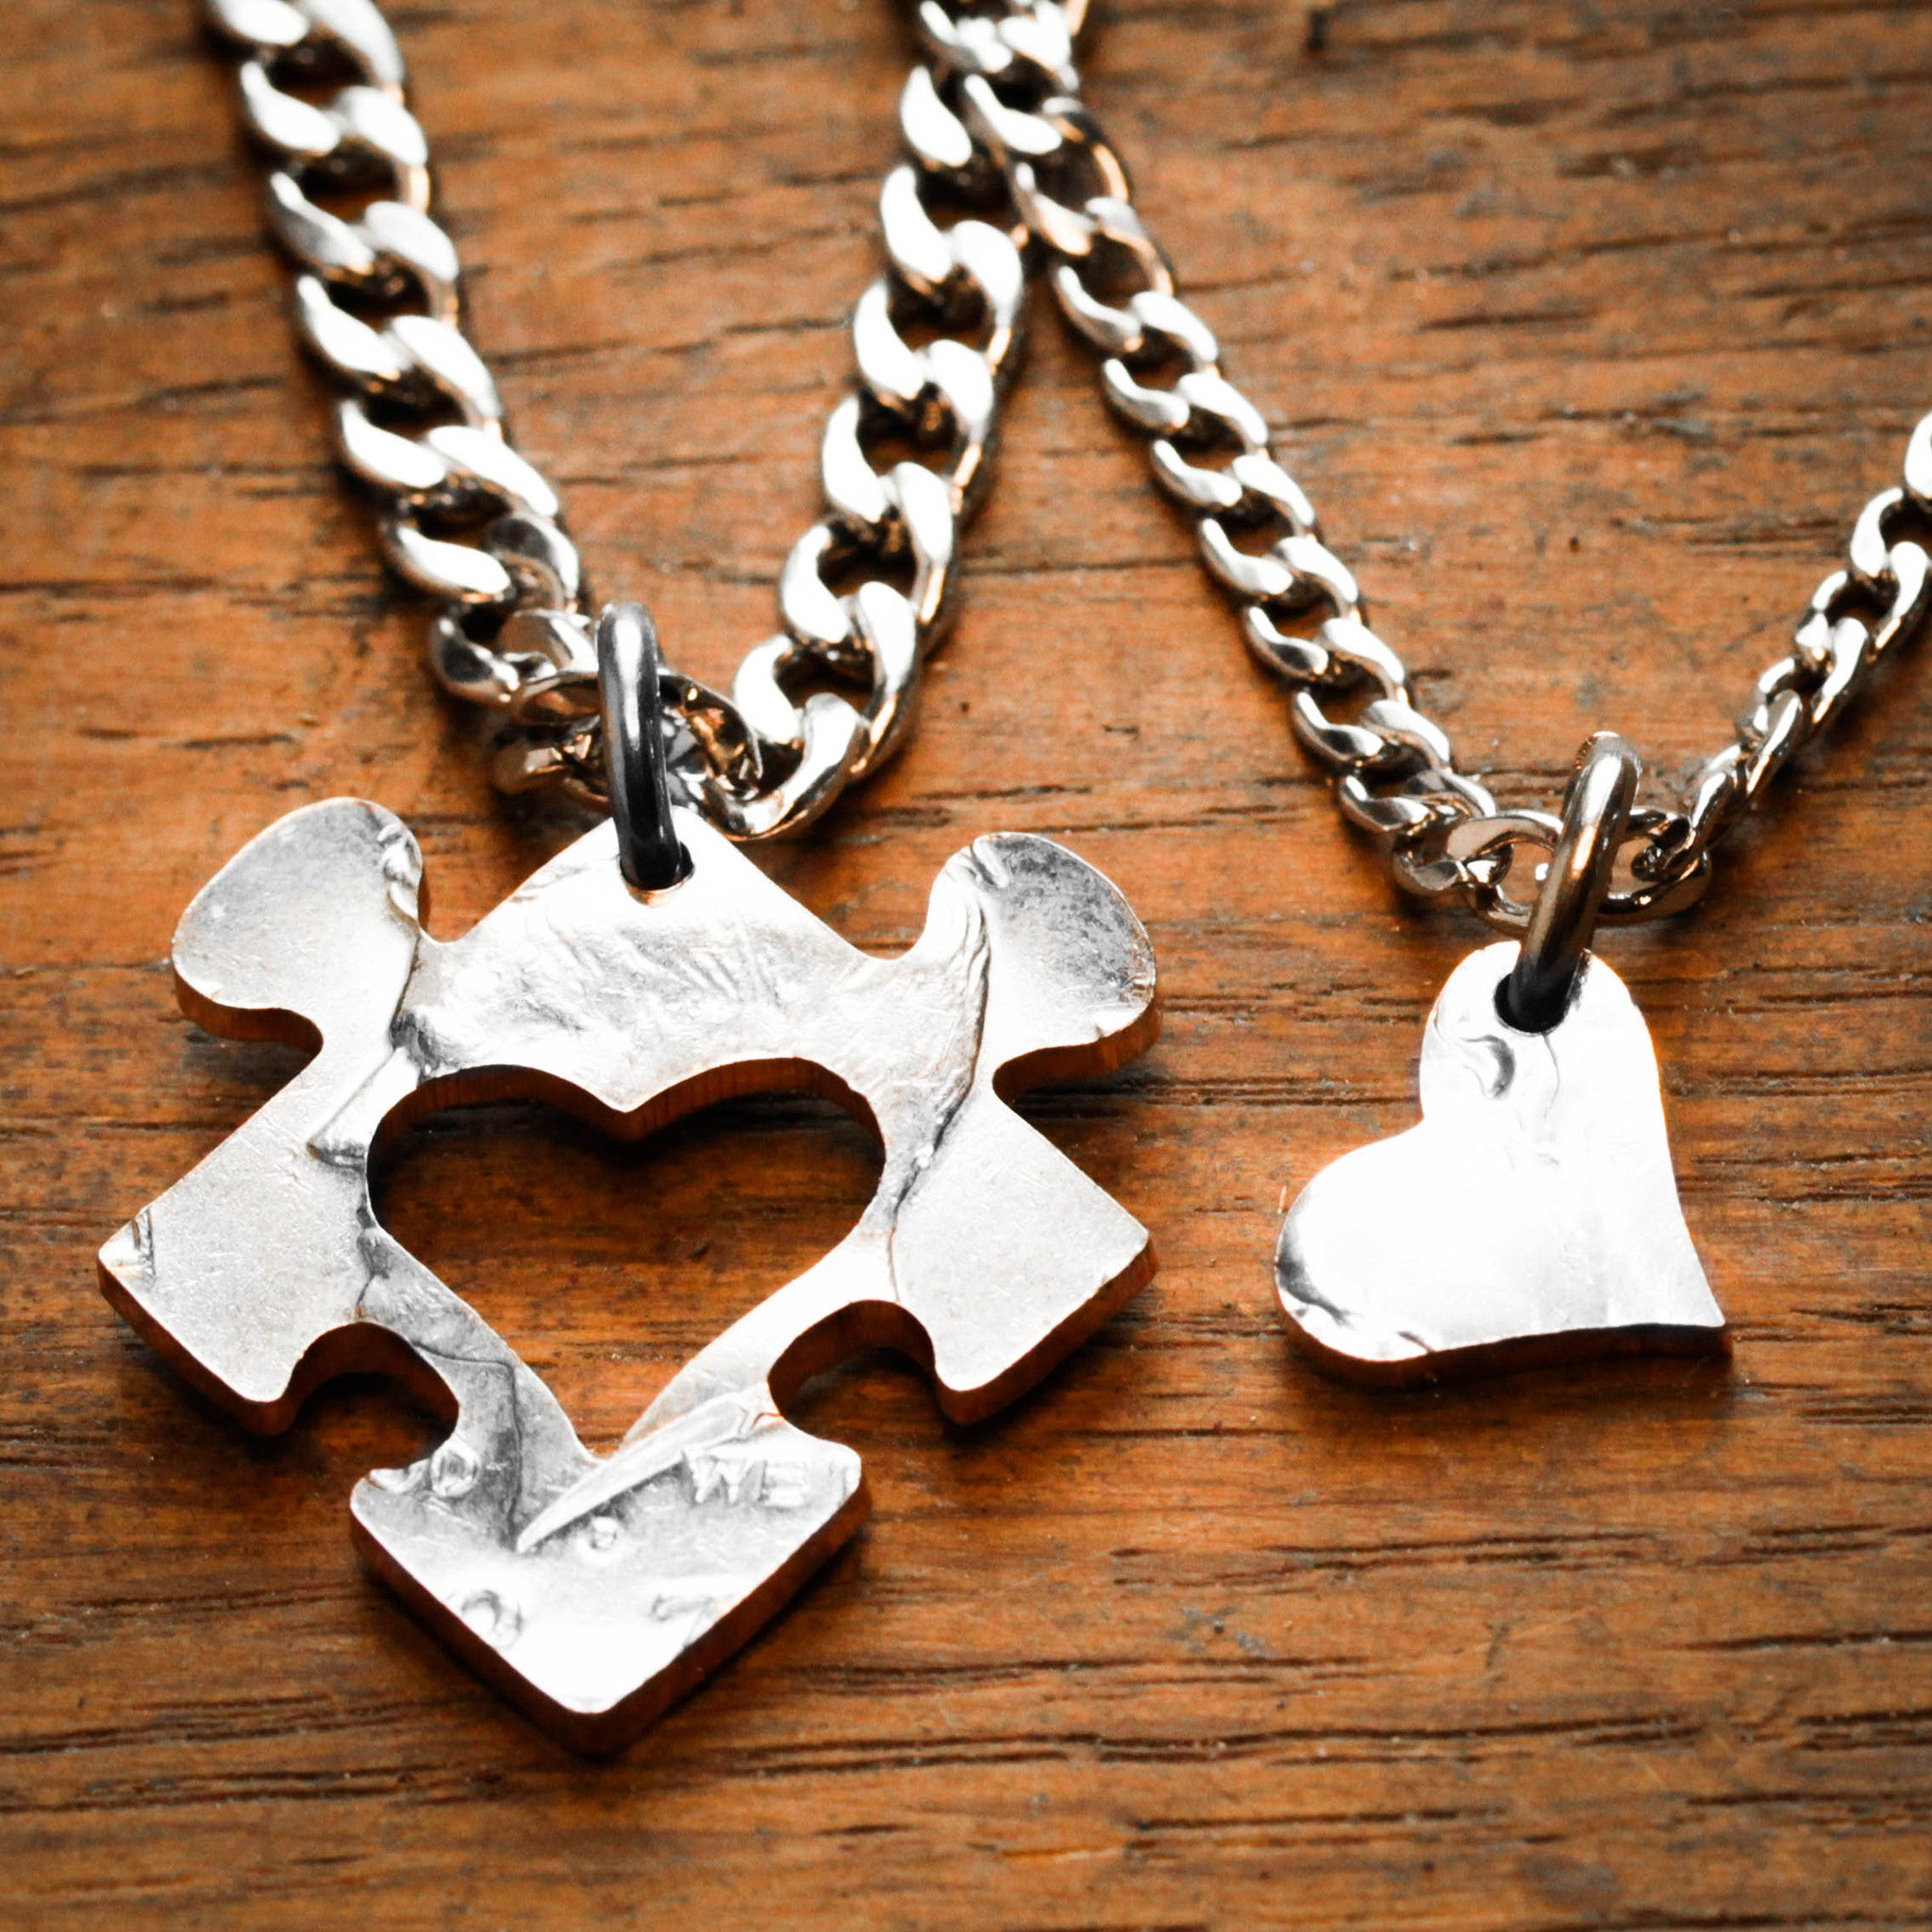 heart stainless puzzle for image necklaces white steel product lovers black products super necklace half